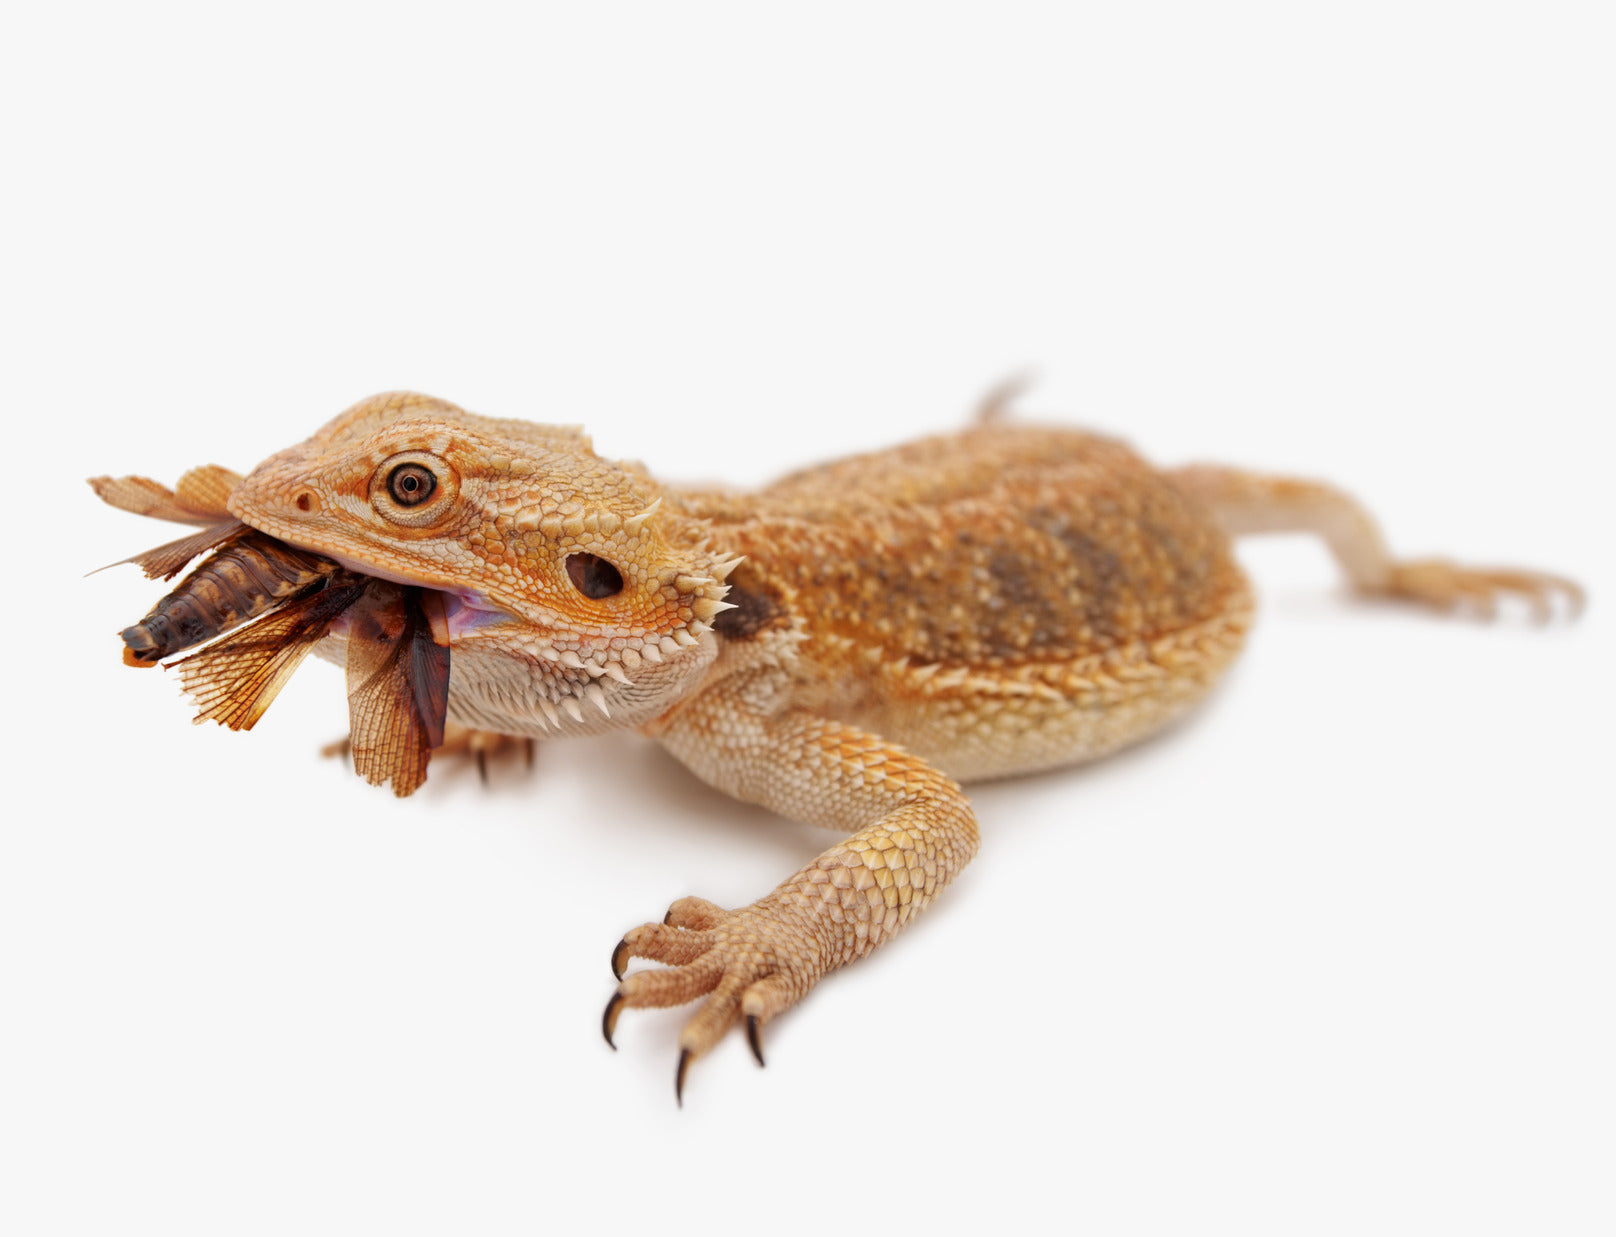 What Can A Bearded Dragon Eat?